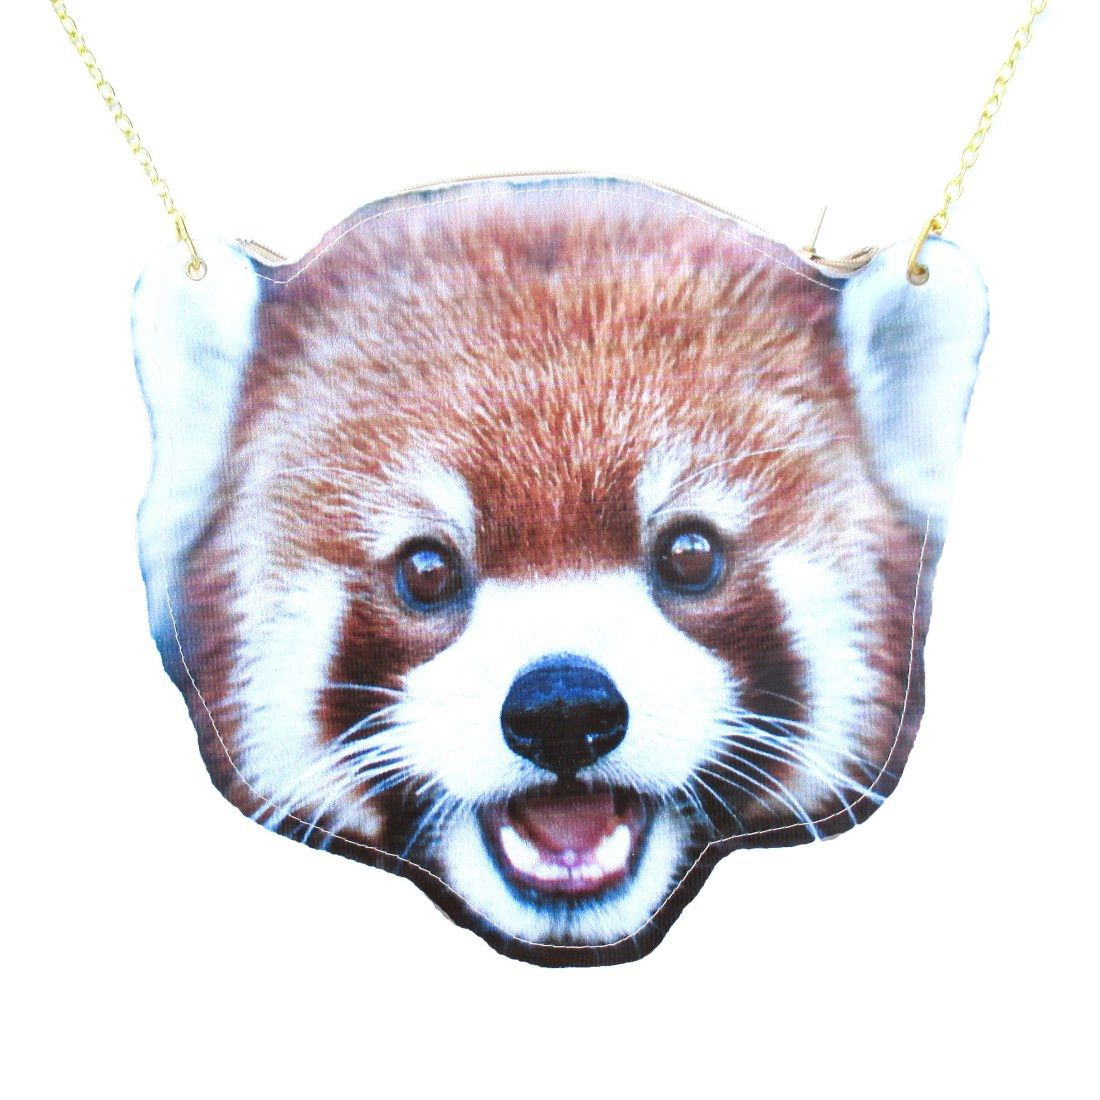 Red Panda Cat-Bear Shaped Vinyl Animal Themed Cross Body Shoulder Bag